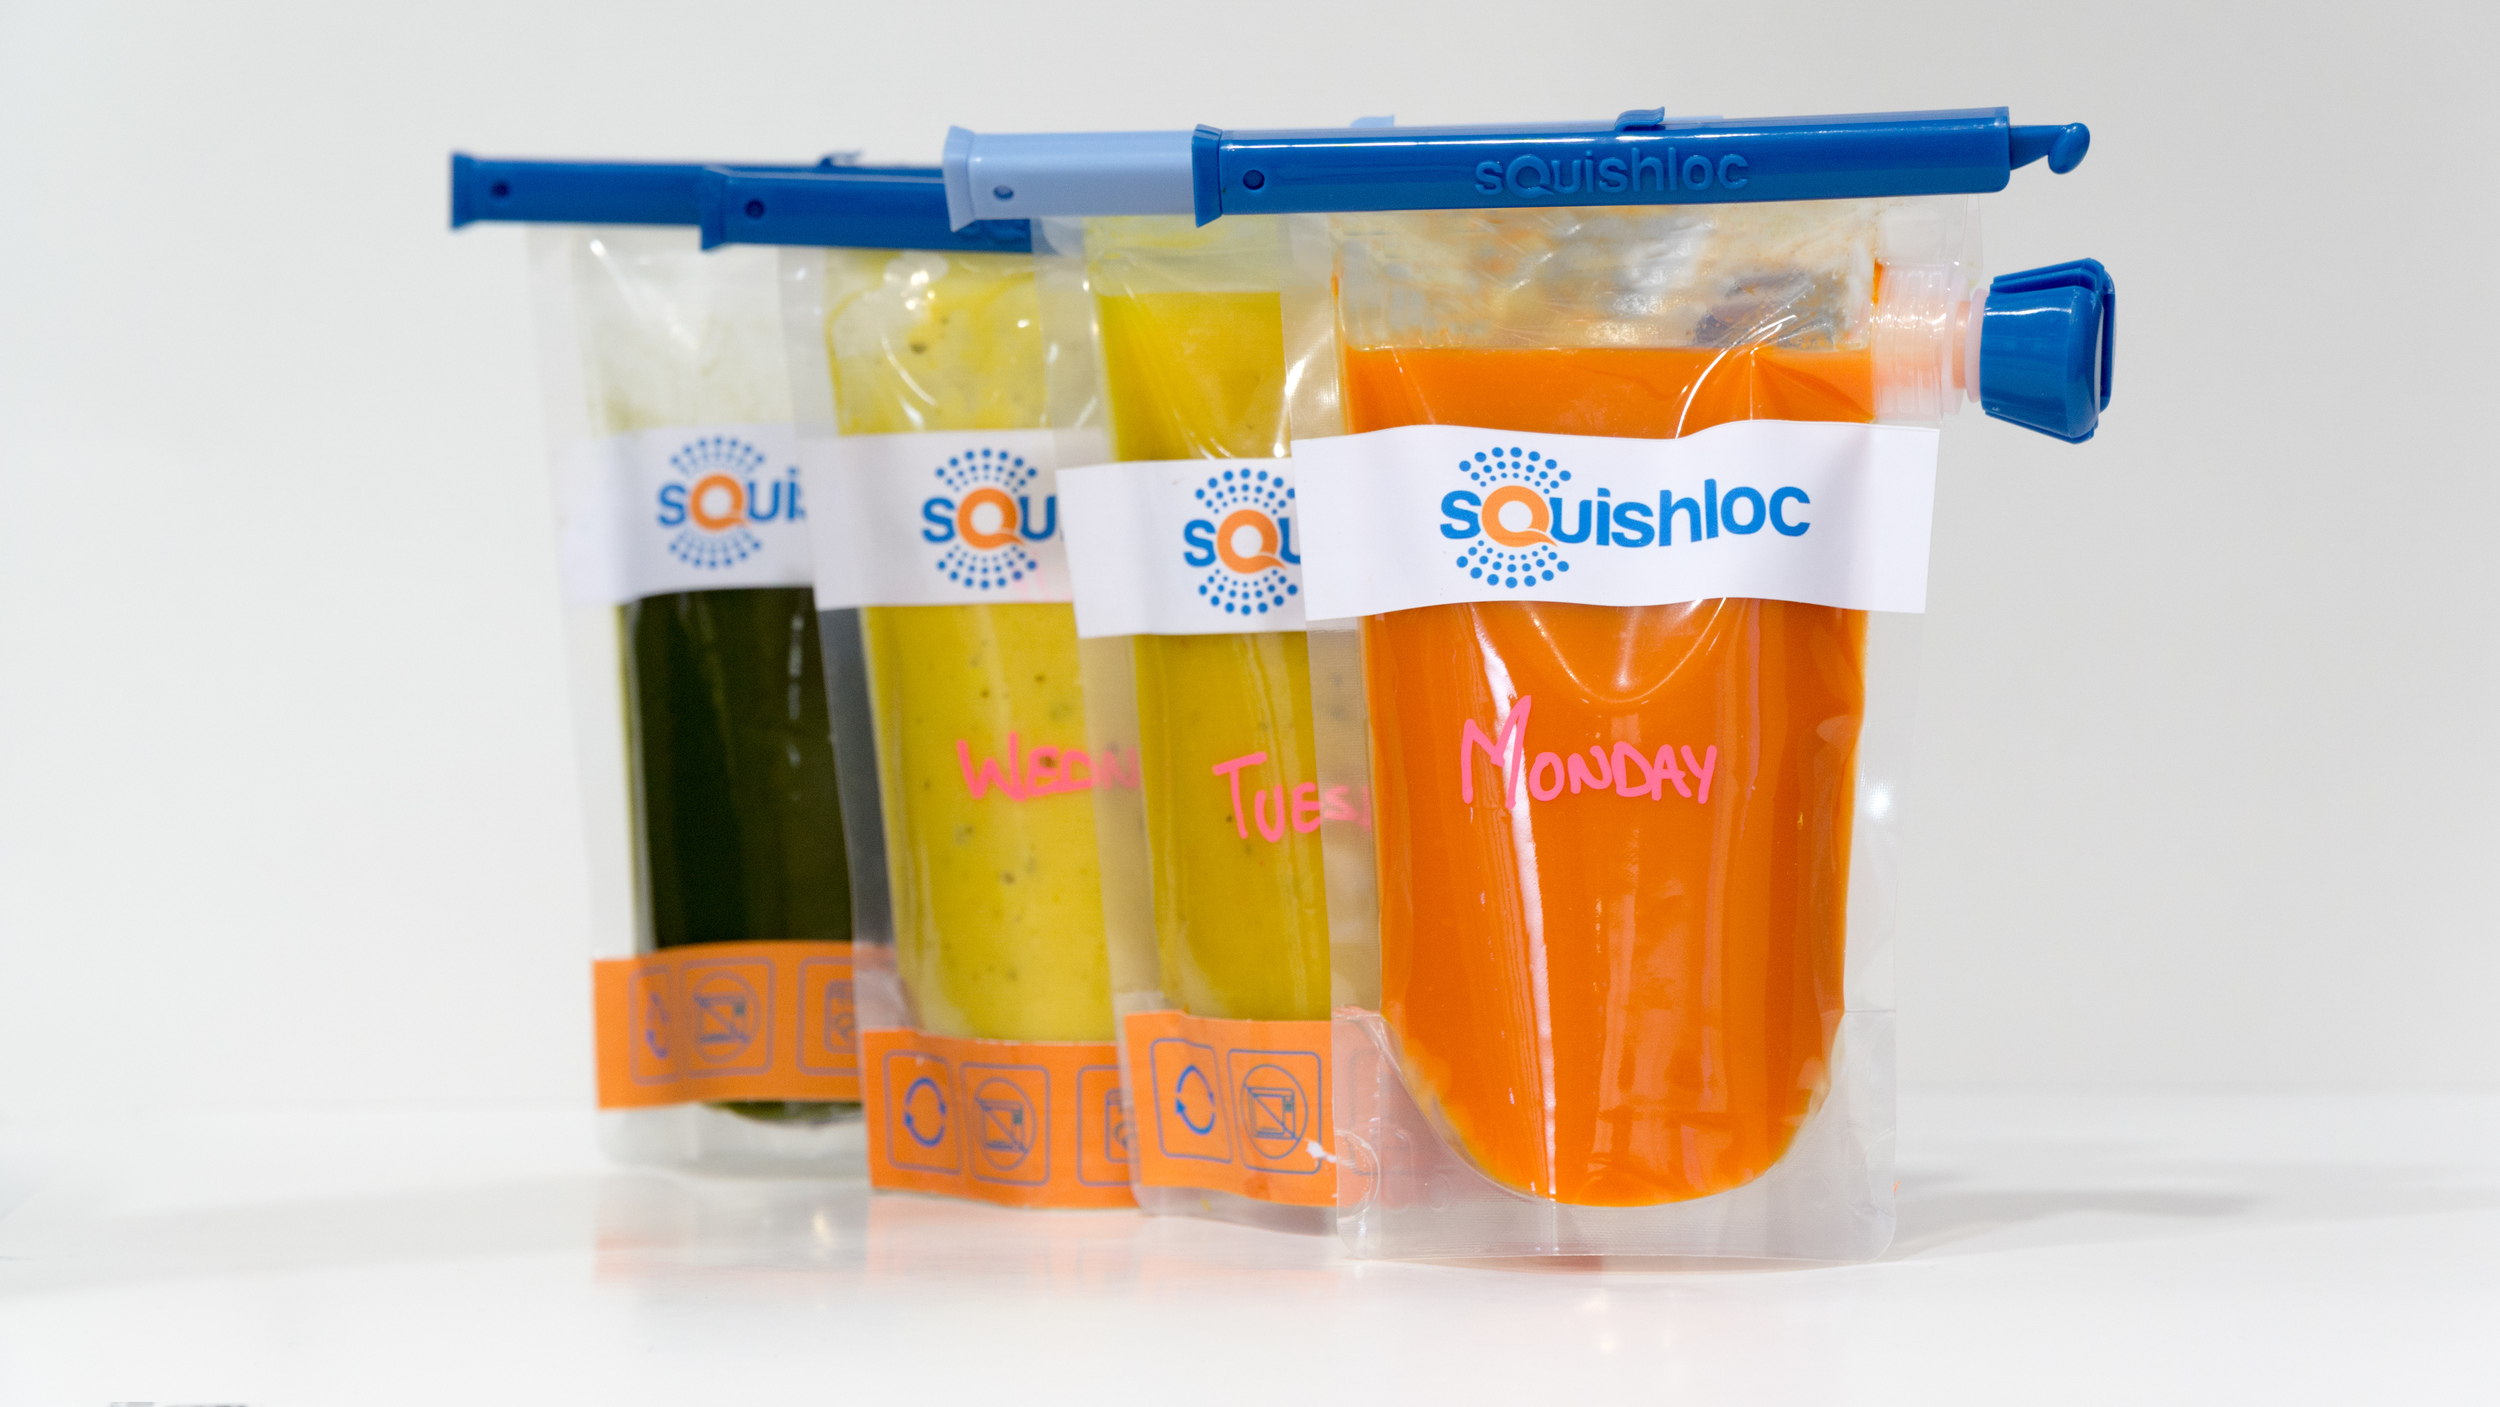 sQuishloc a day, keeps unhealthy food court lunch deals away